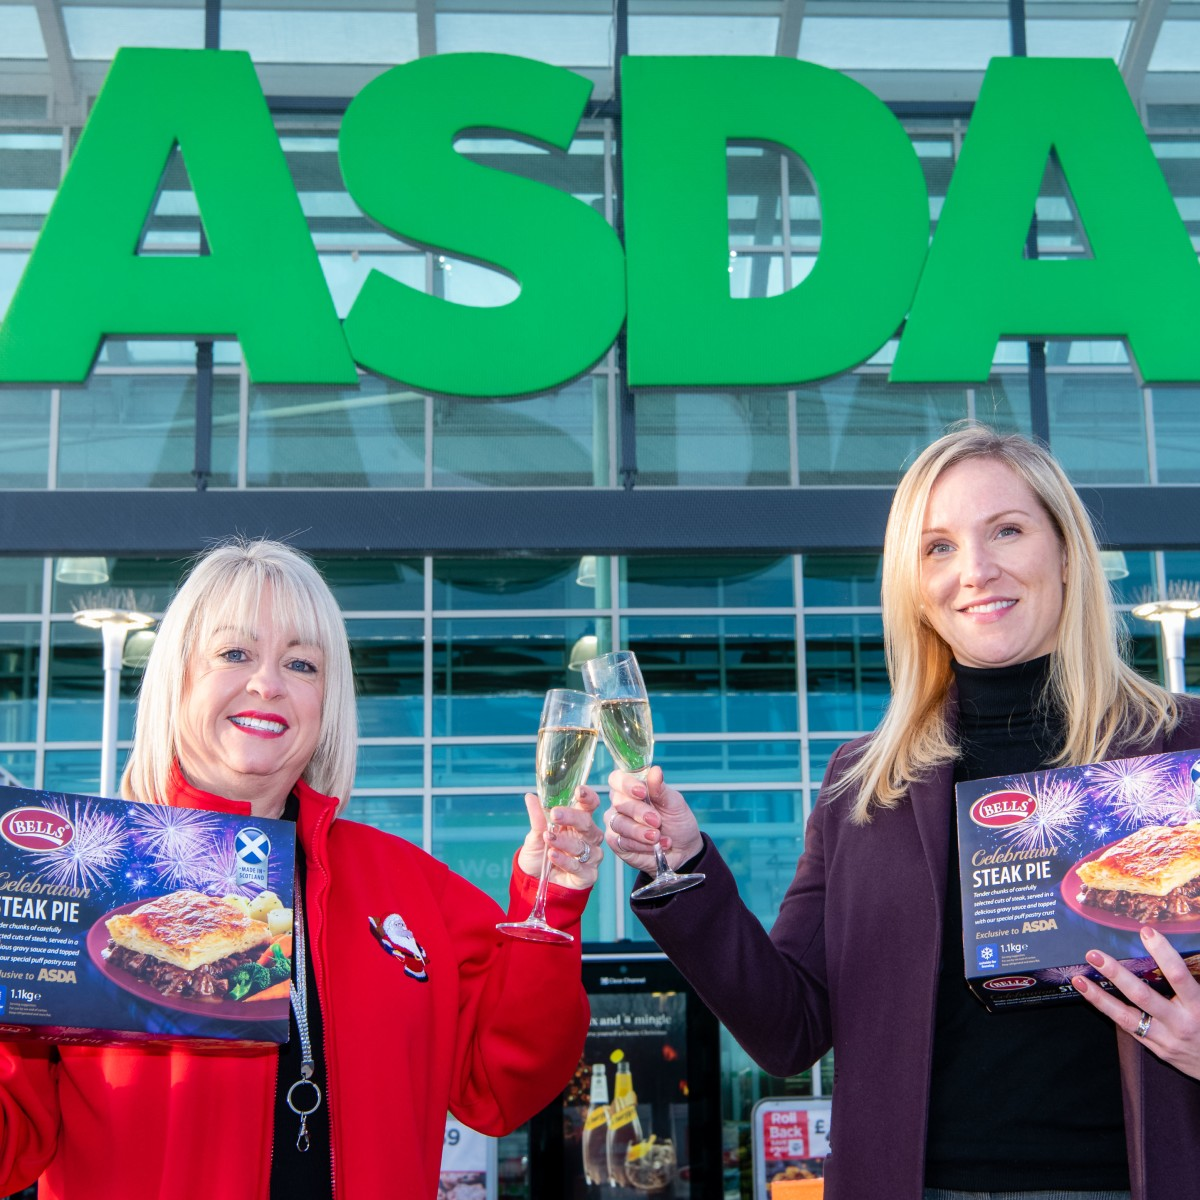 Bells and Asda 'Celebrate' Hogmanay with Limited-Edition Pie